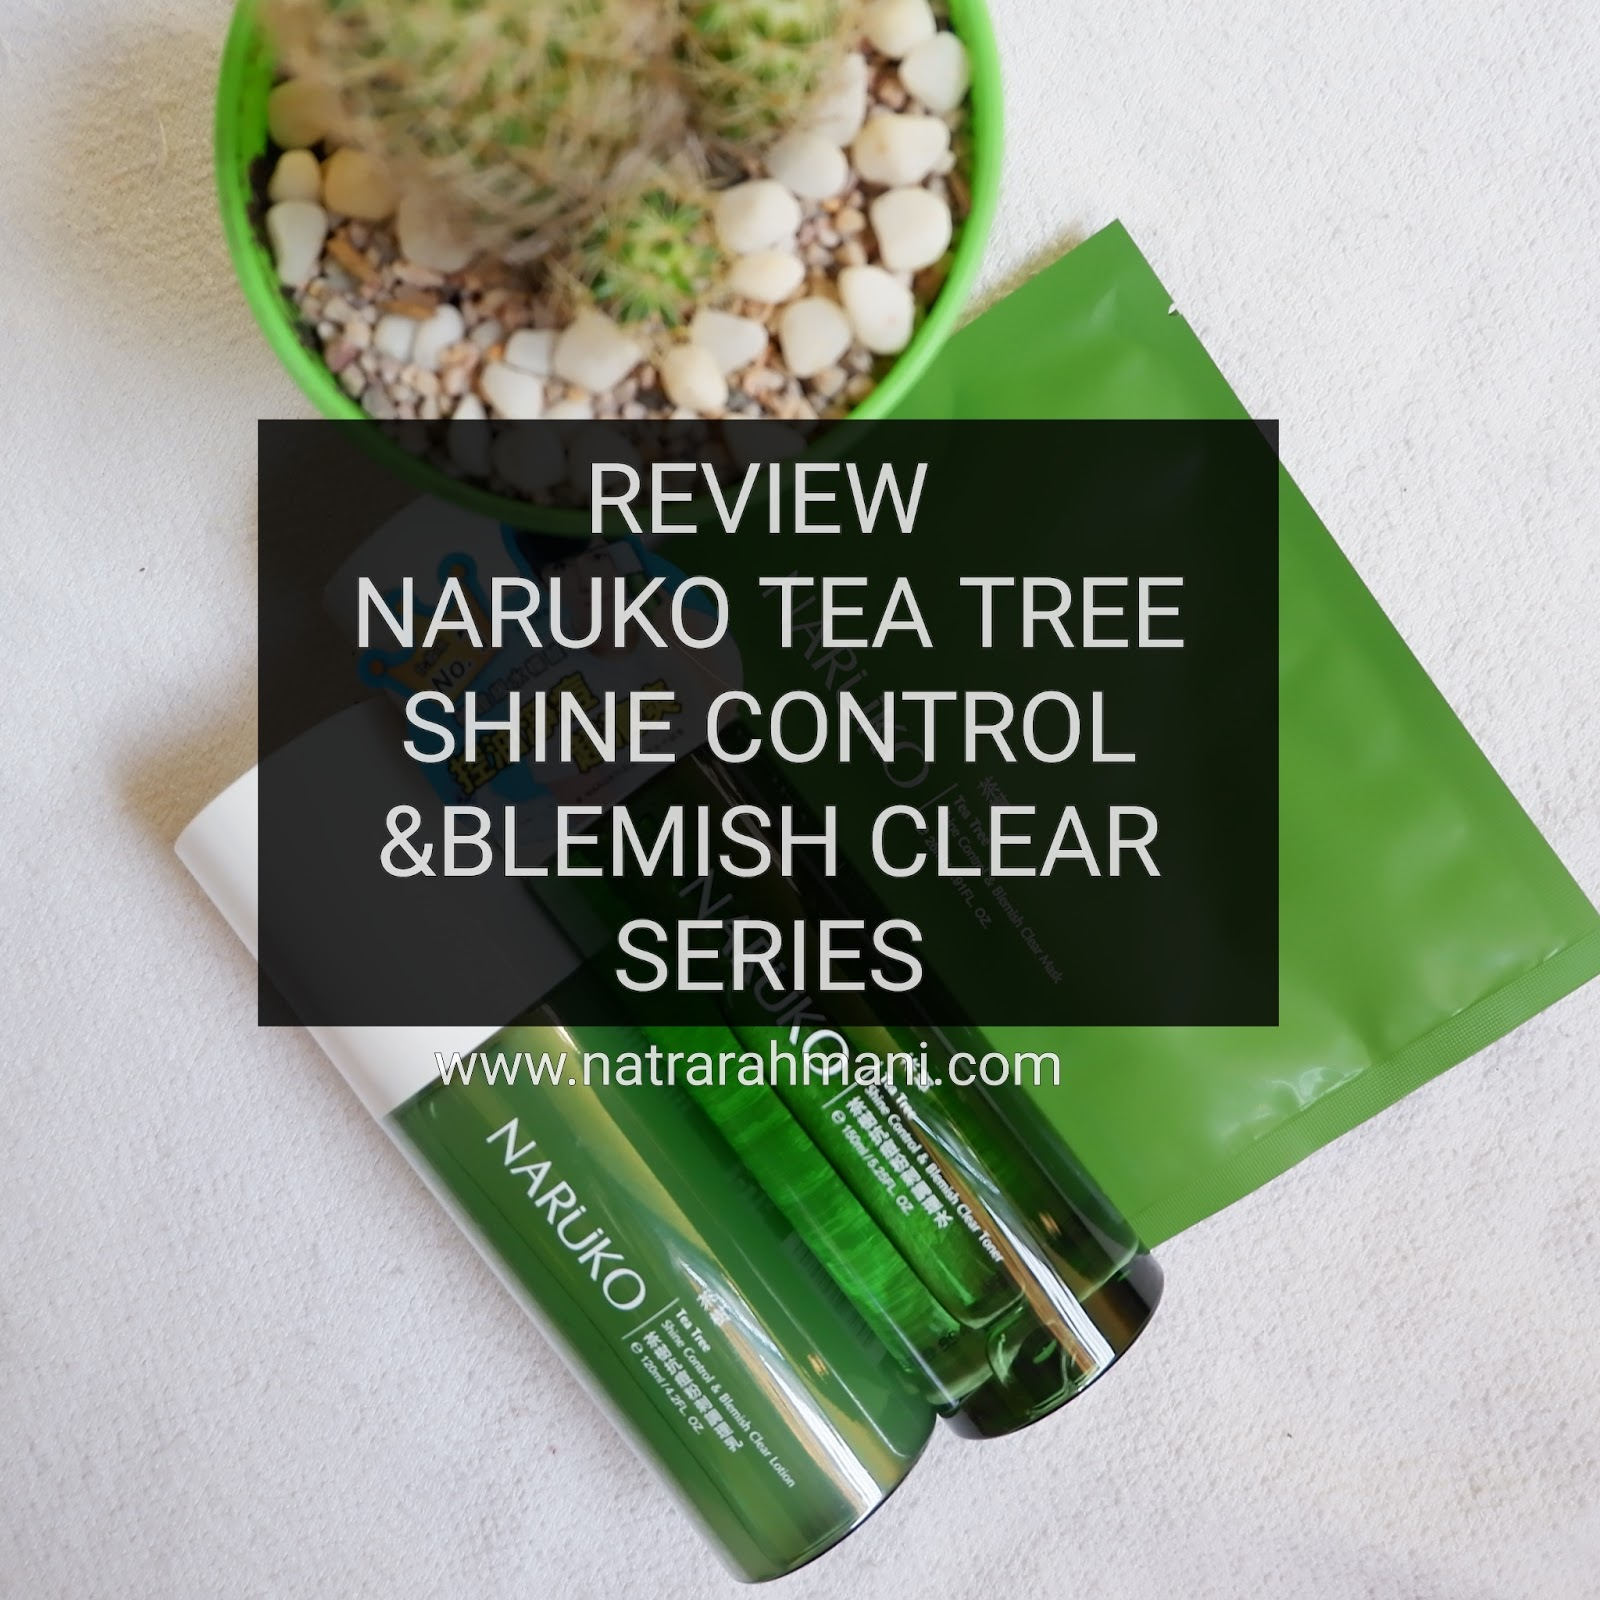 review-naruko-tea-tree-series-natrarahmani